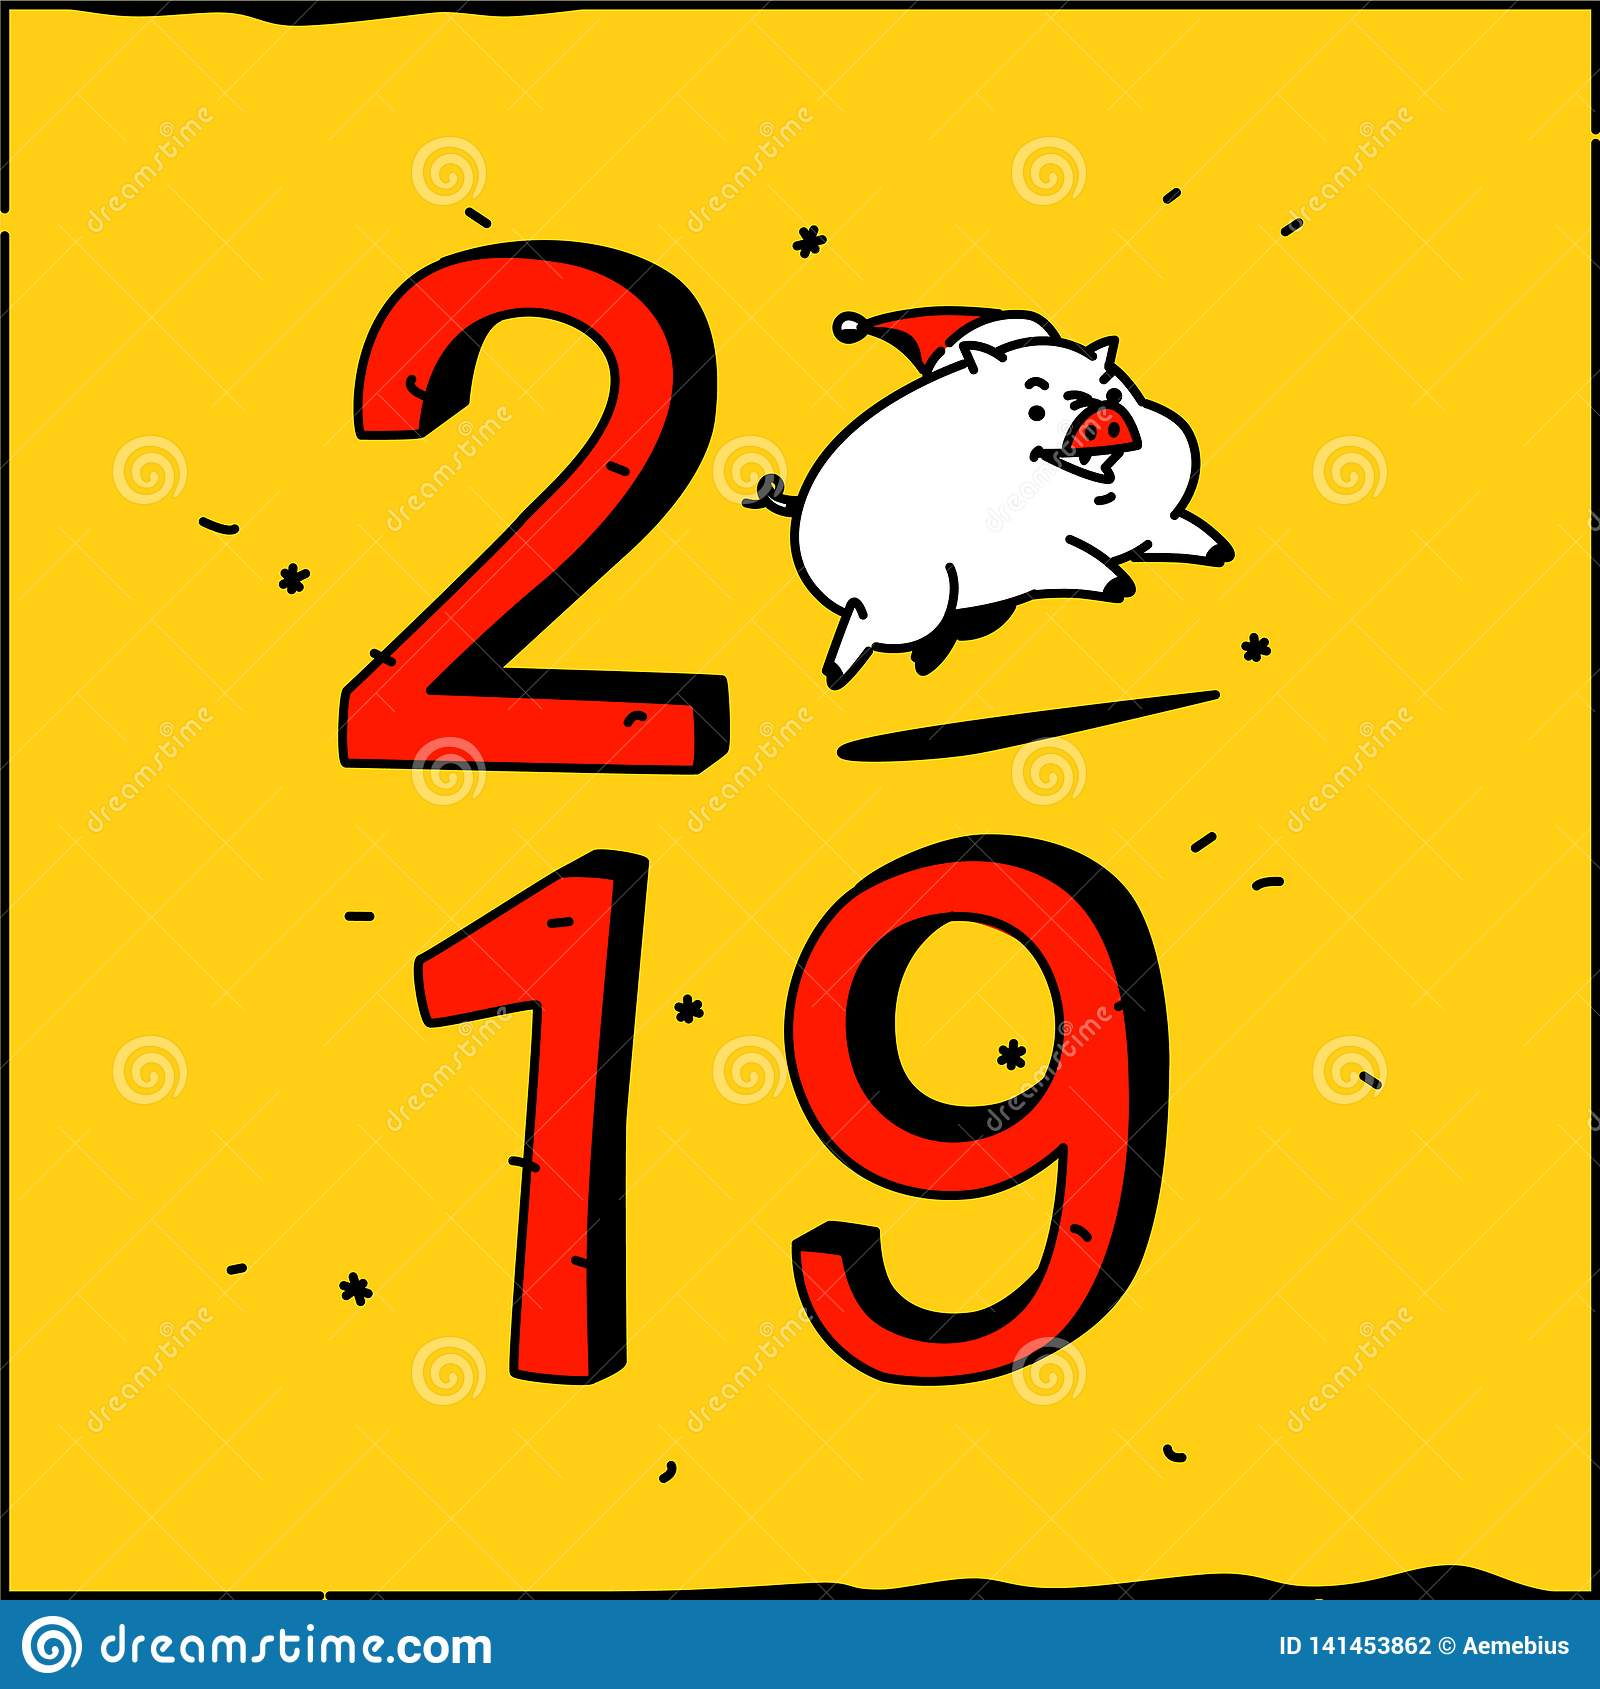 New year's illustration of a cartoon pig with the inscription 2019. Vector. The illustration is isolated on a yellow